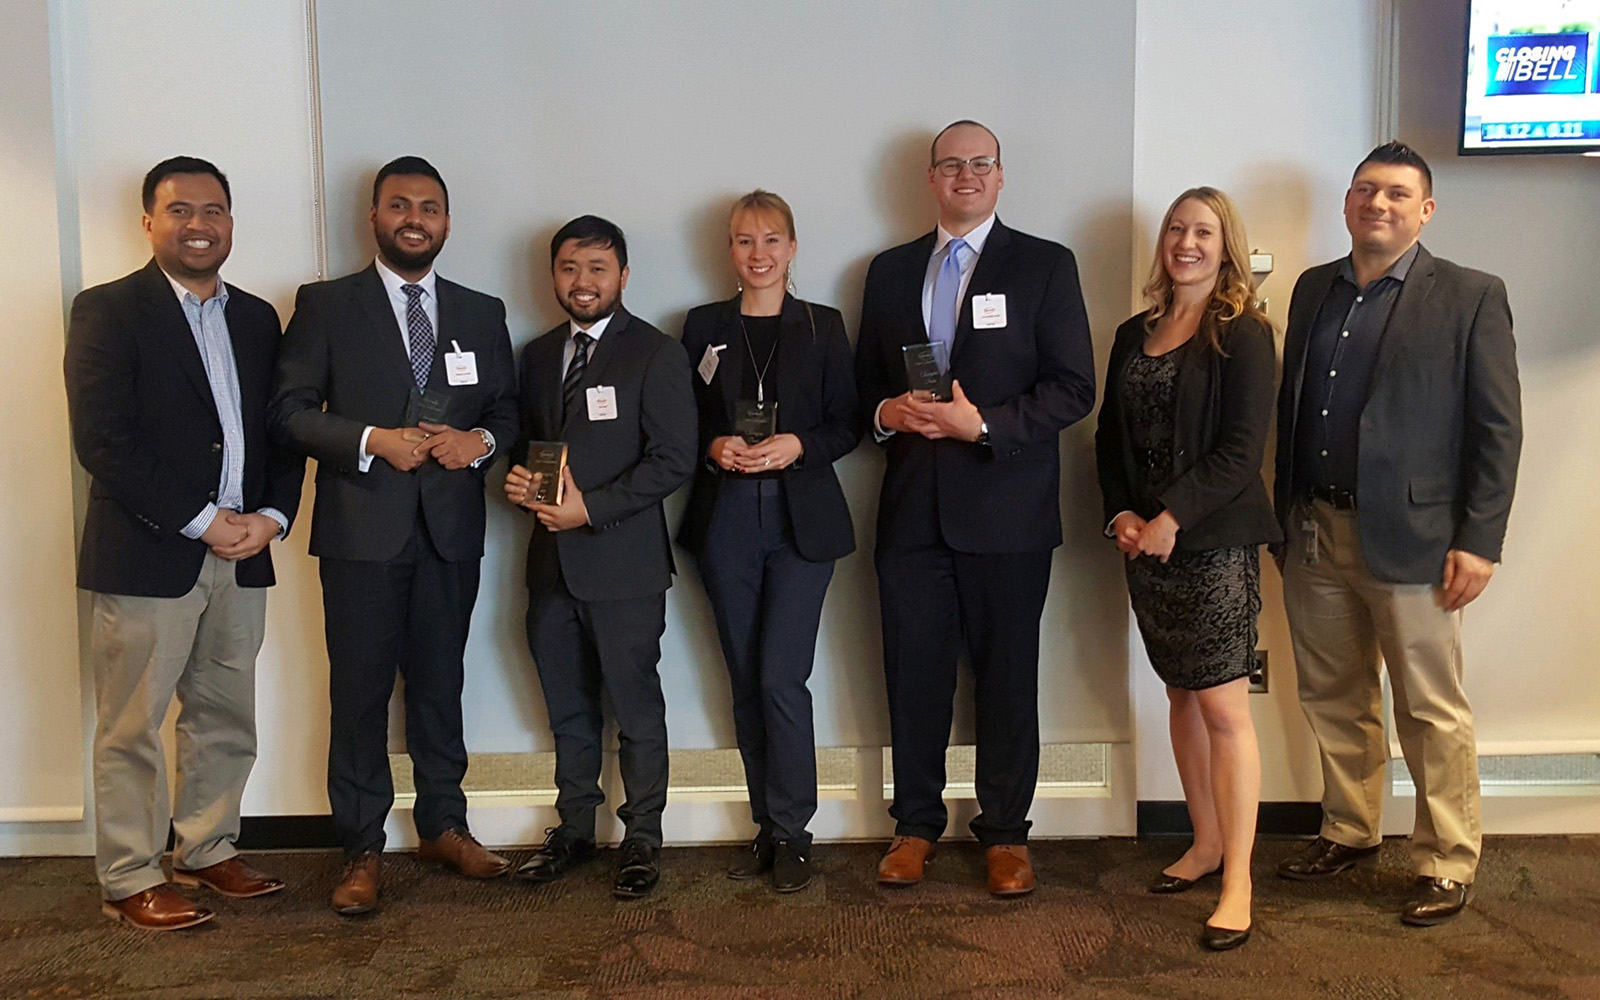 Kseniia Poiarkina '18 MBA (center) poses for a photo with teammates and Henkel representatives following her team's case competition win. (Kseniia Poiarkina '18 MBA/UConn School of Business)